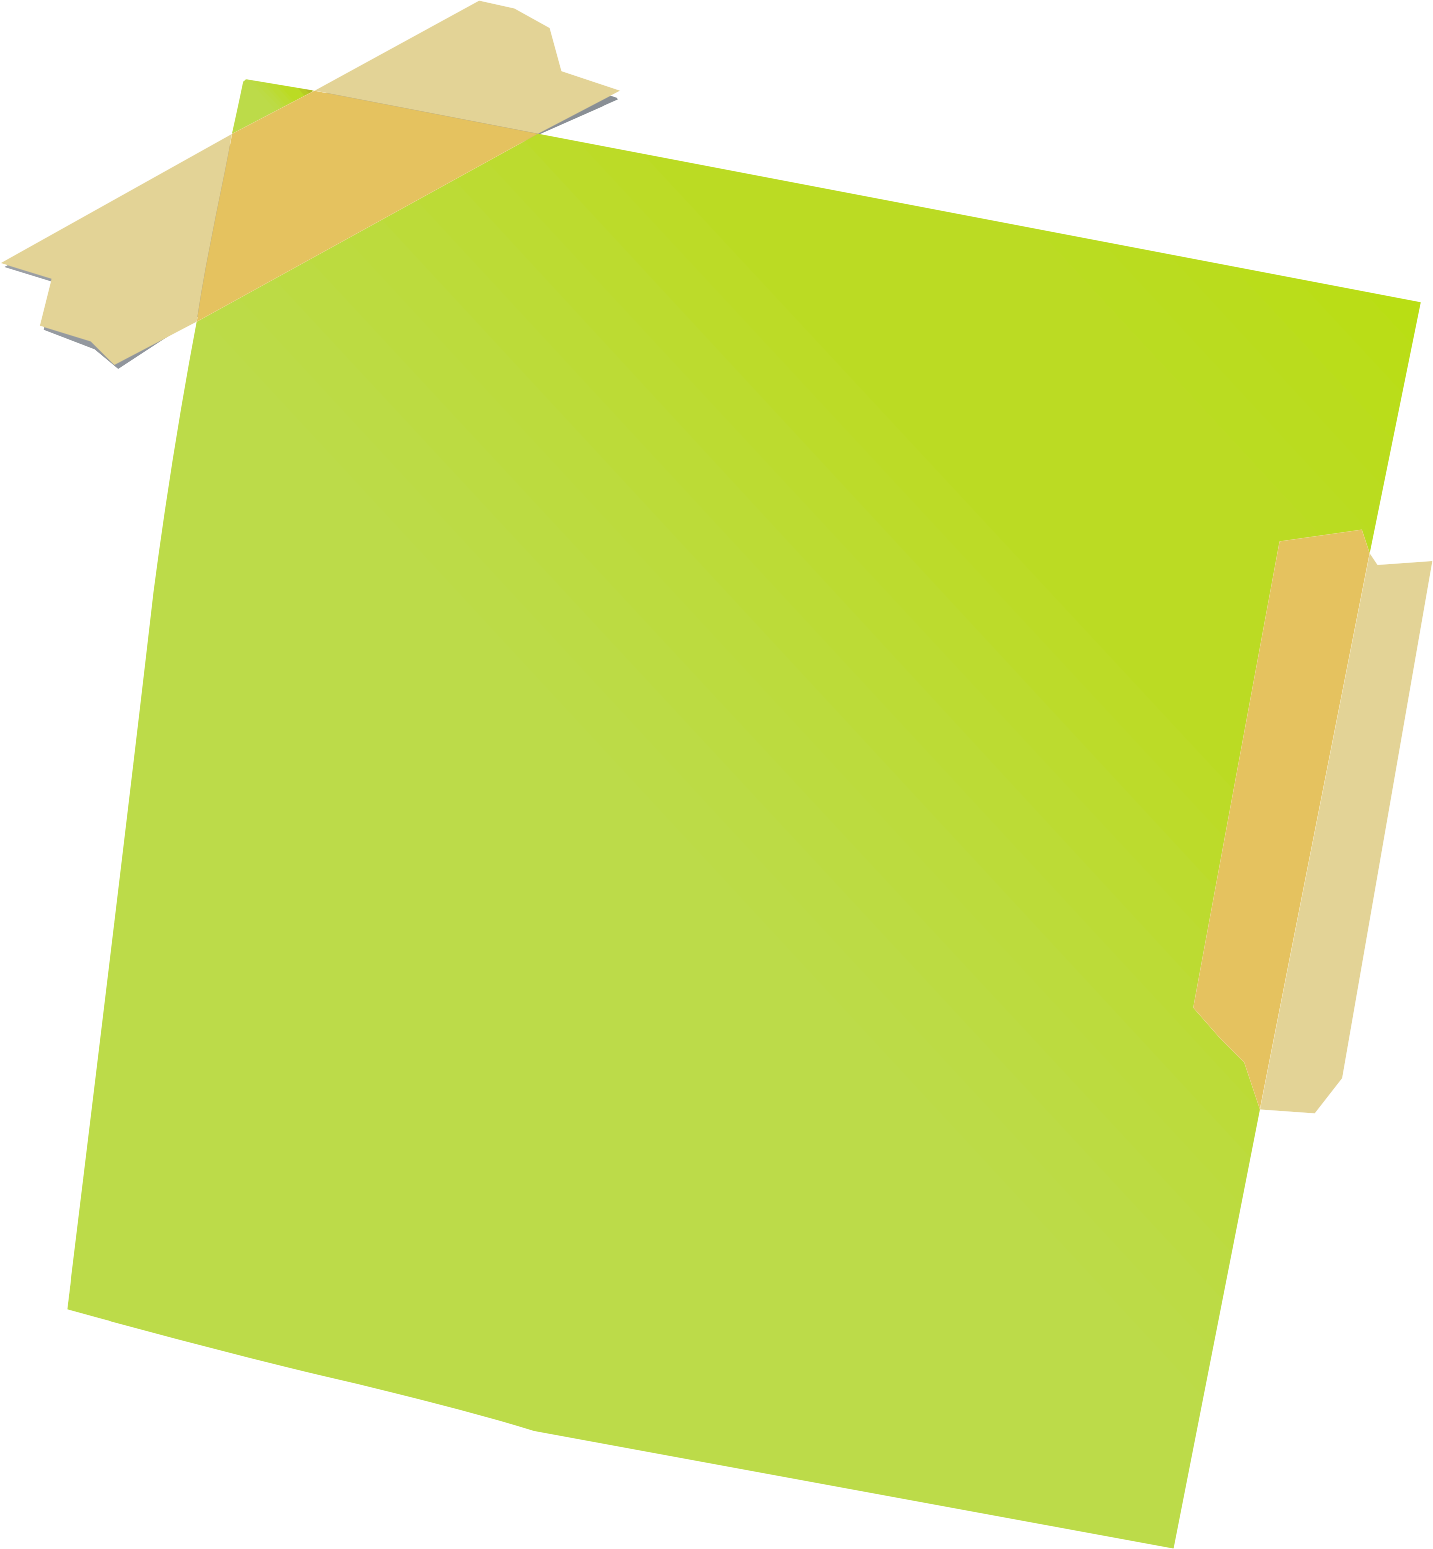 Sticy notes png image. Clipboard clipart transparent background